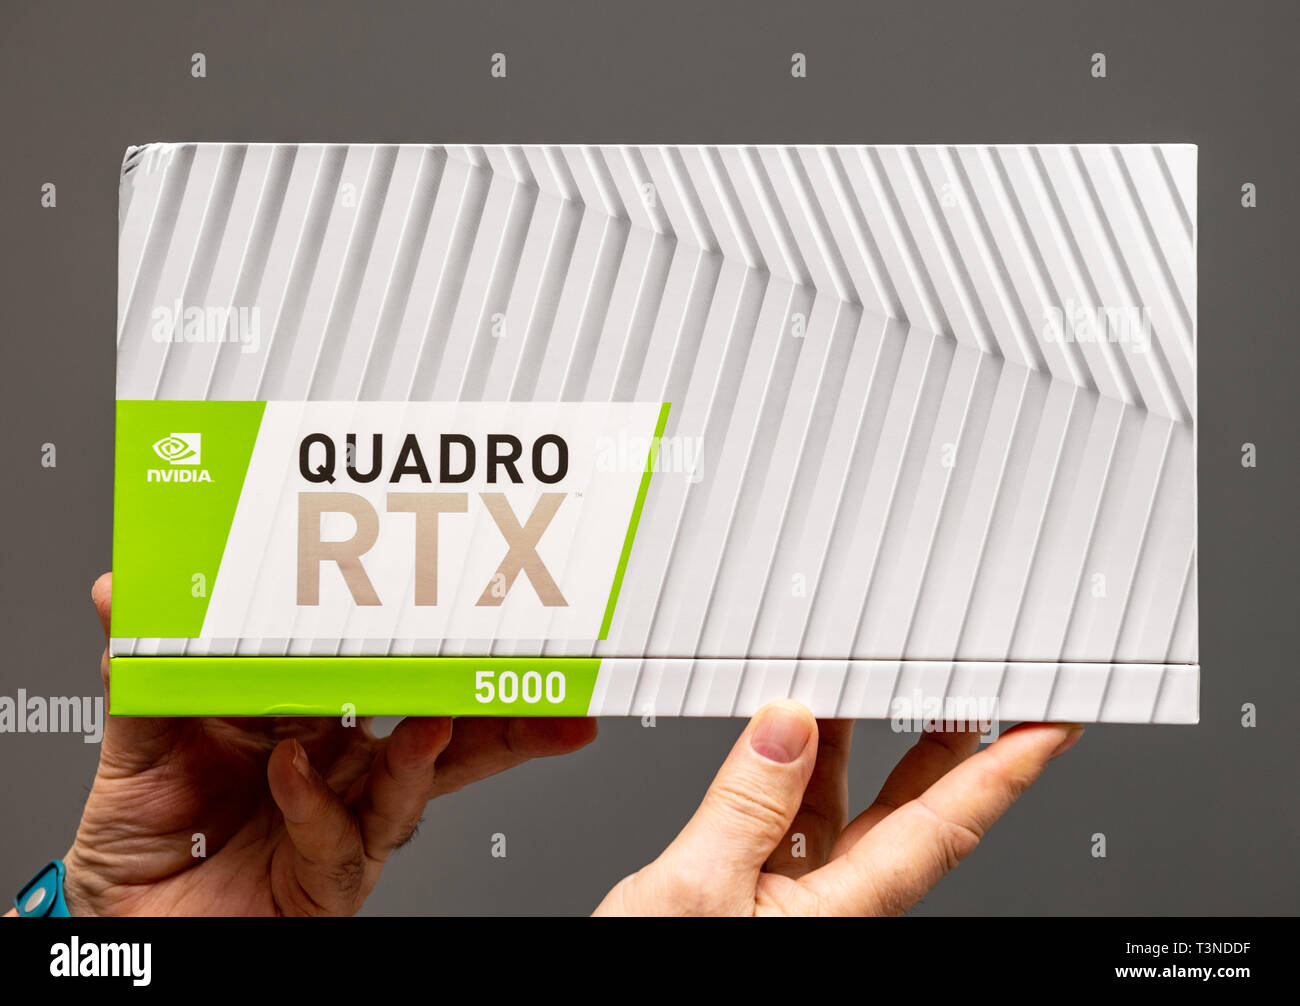 Paris; France - Mar 28 2019: Senior man showing cardboard packaging before unboxing of Nvidia Quadro RTX 5000 workstation GPU featuring new streaming multiprocessors; tensor cores - gray background - Stock Image